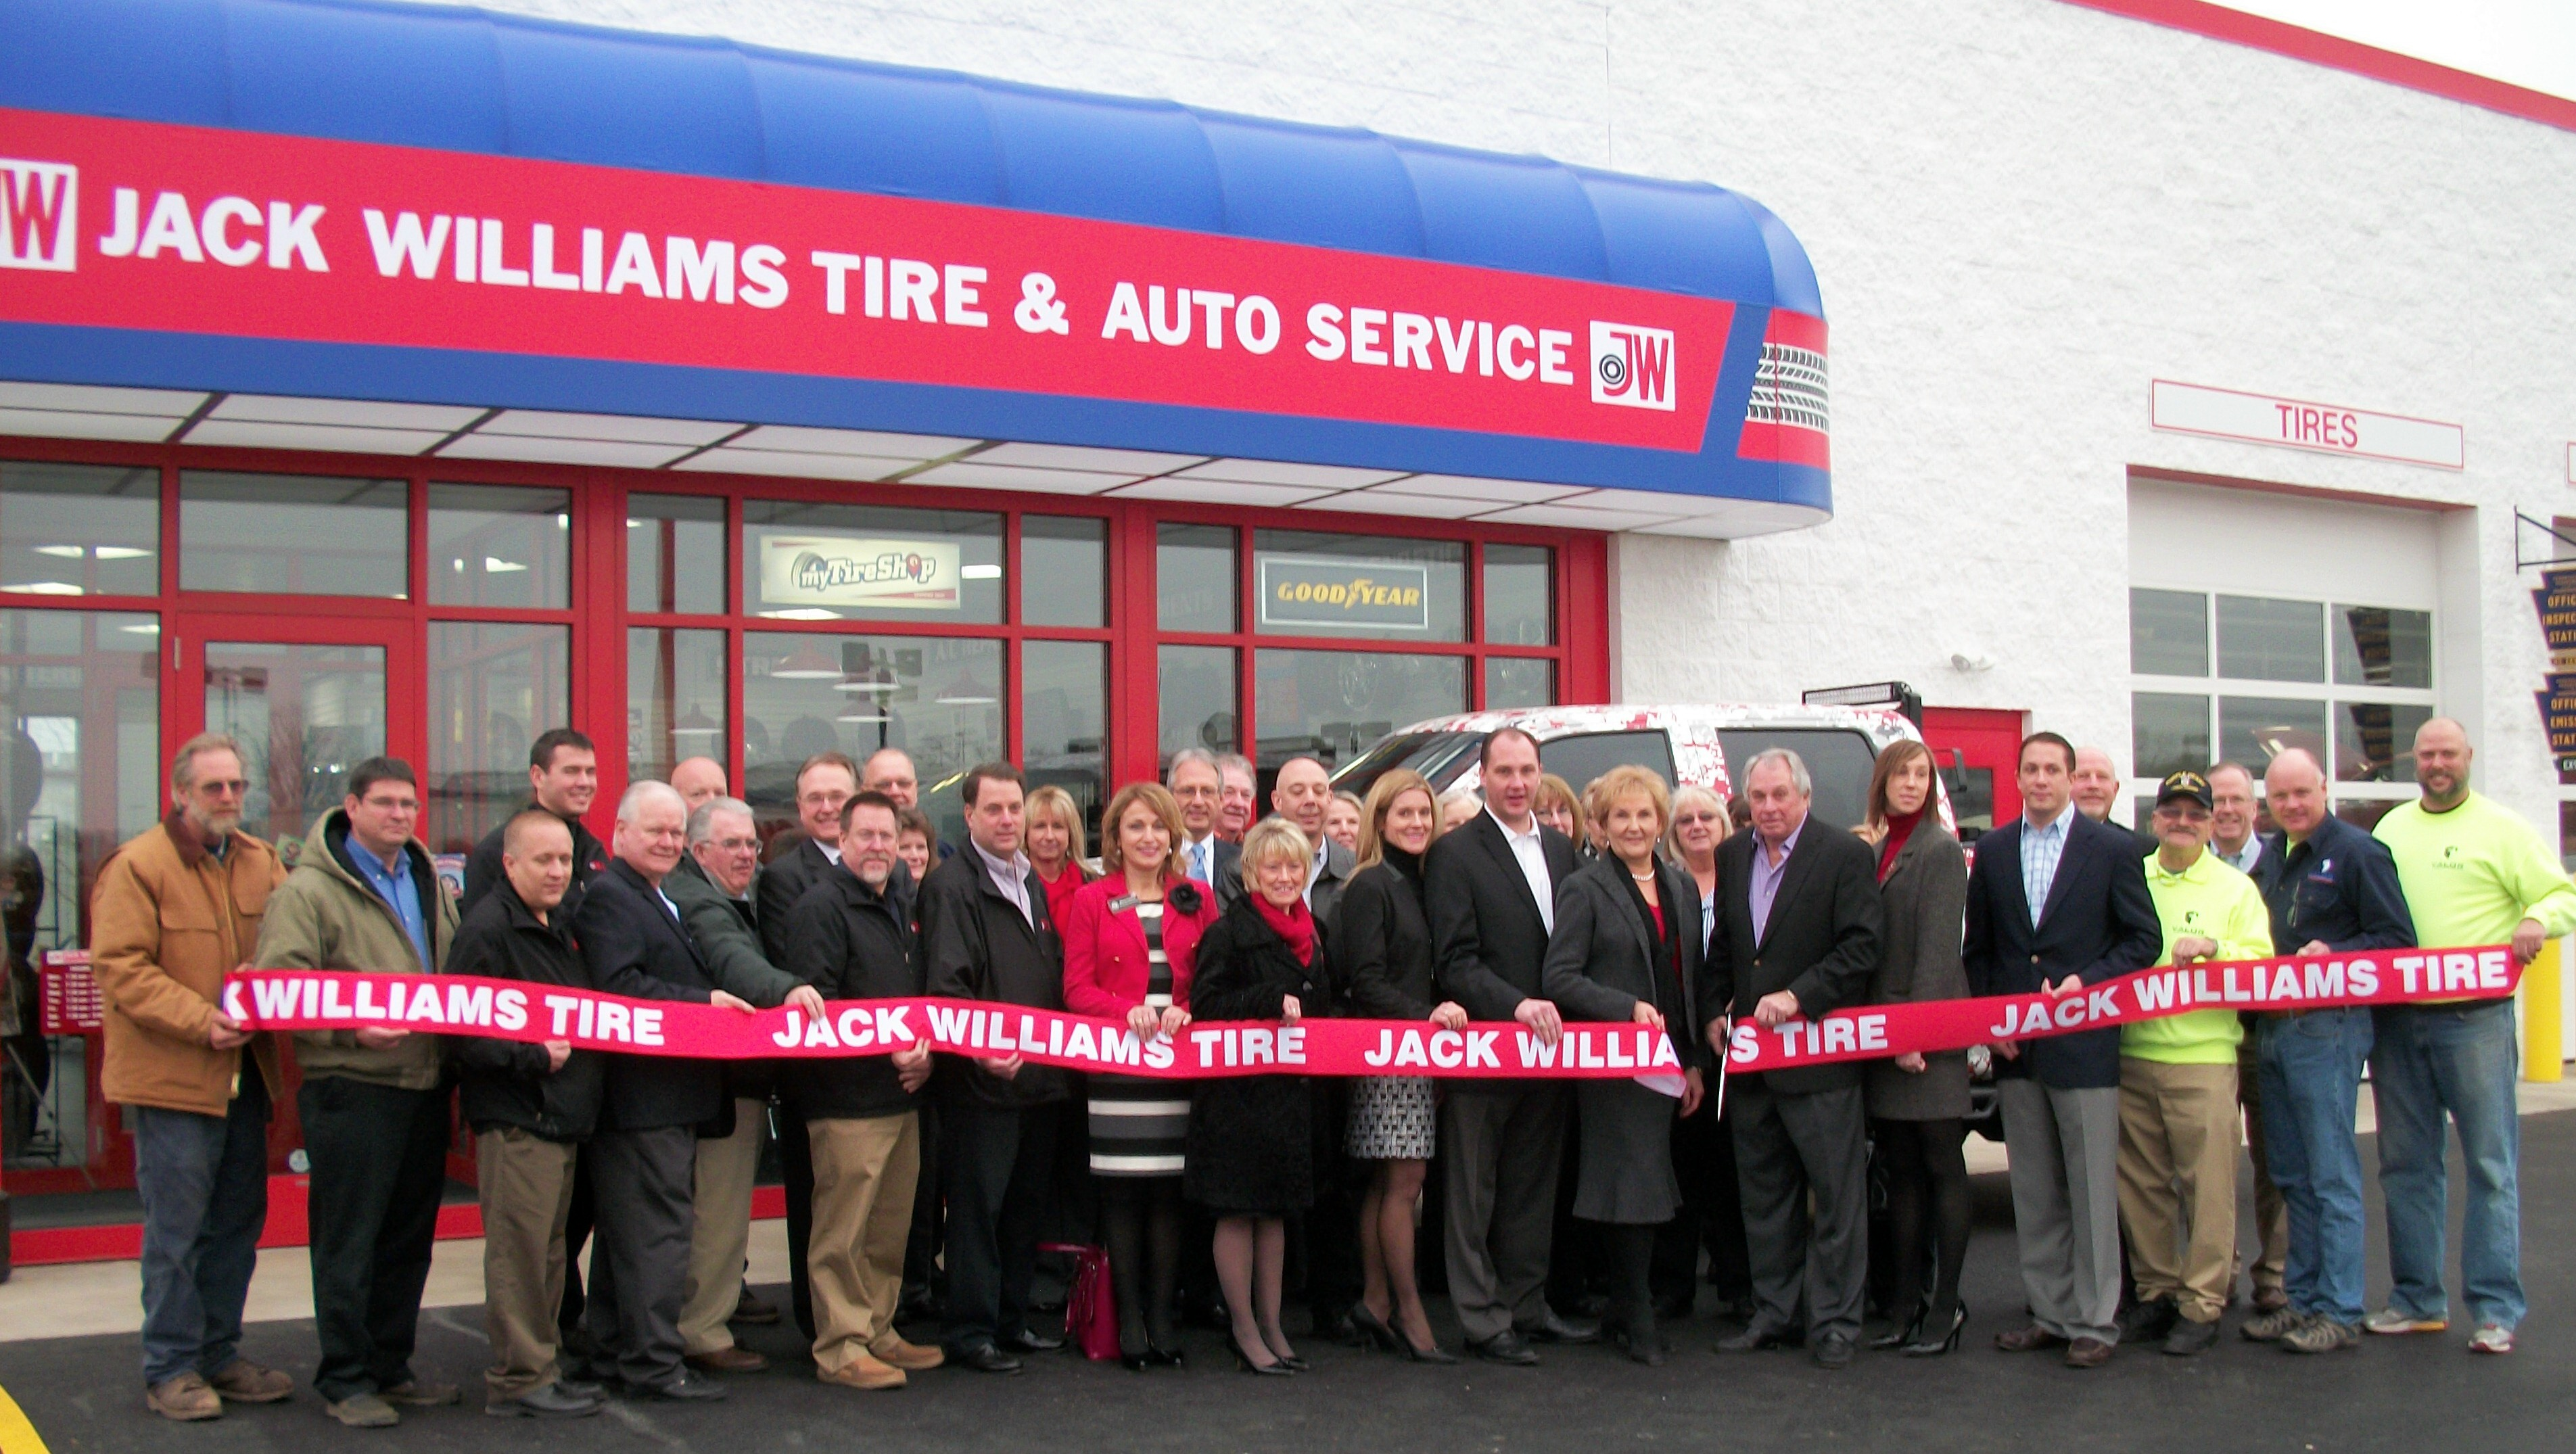 Jack Williams Tire Opens 30th Retail Location in Brodheadsville